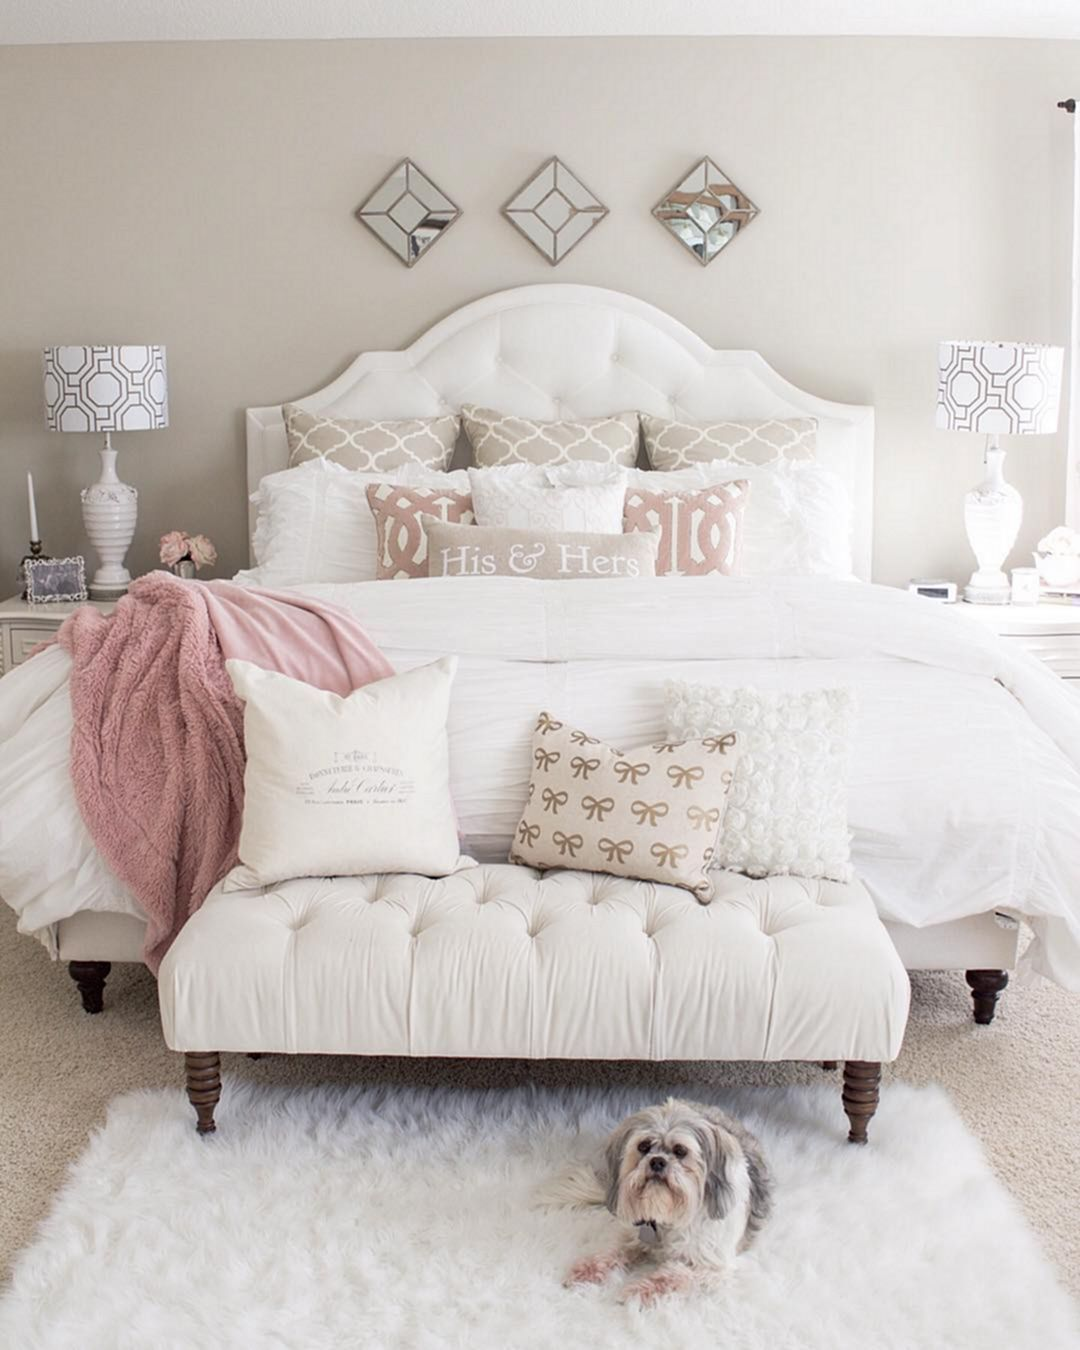 Modern Furniture 2014 Amazing Master Bedroom Decorating Ideas: 15+ Amazing Romantic Master Bedroom Design Ideas You Have